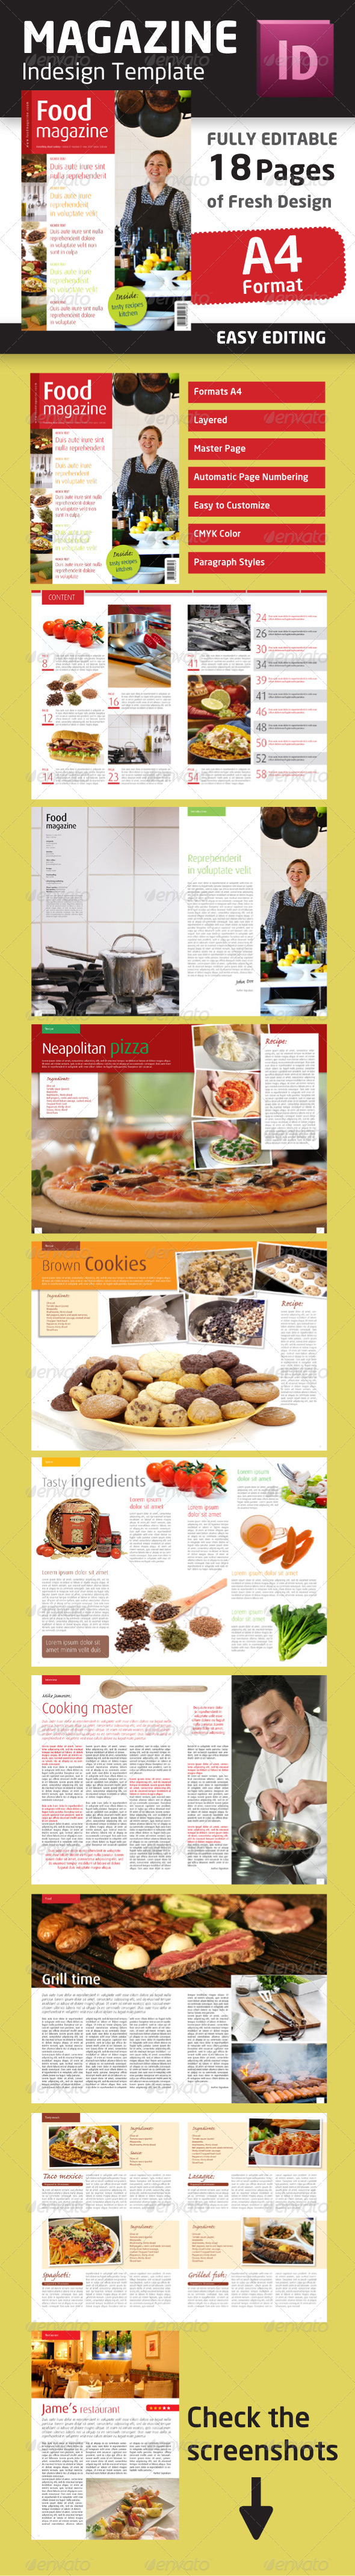 Graphic River Indesign Food Magazine Template in A4 format Print Templates -  Magazines 1474710